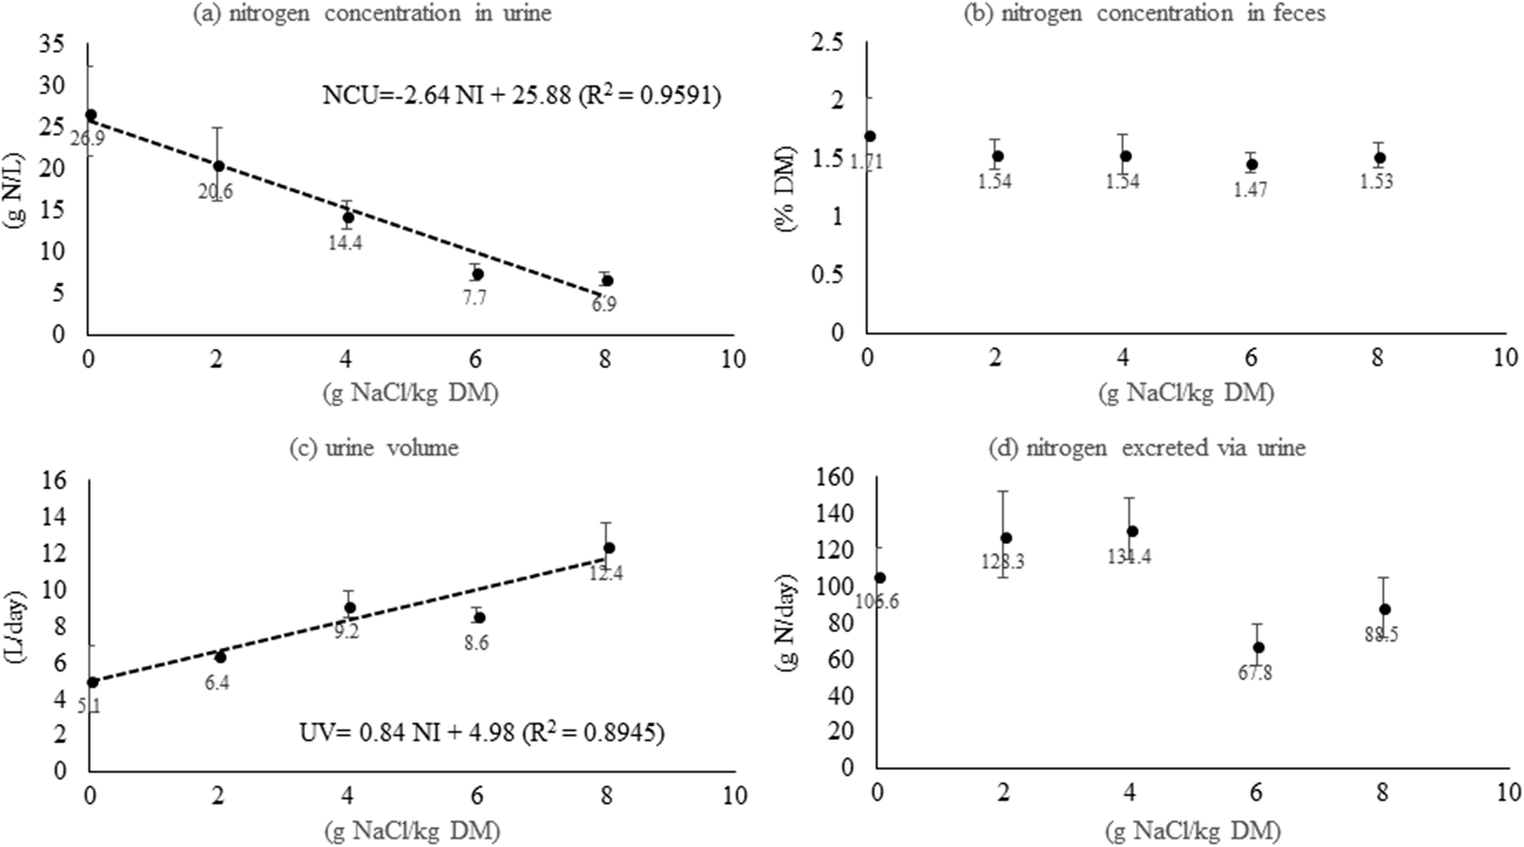 Mineral salt intake effects on faecal-N concentration and